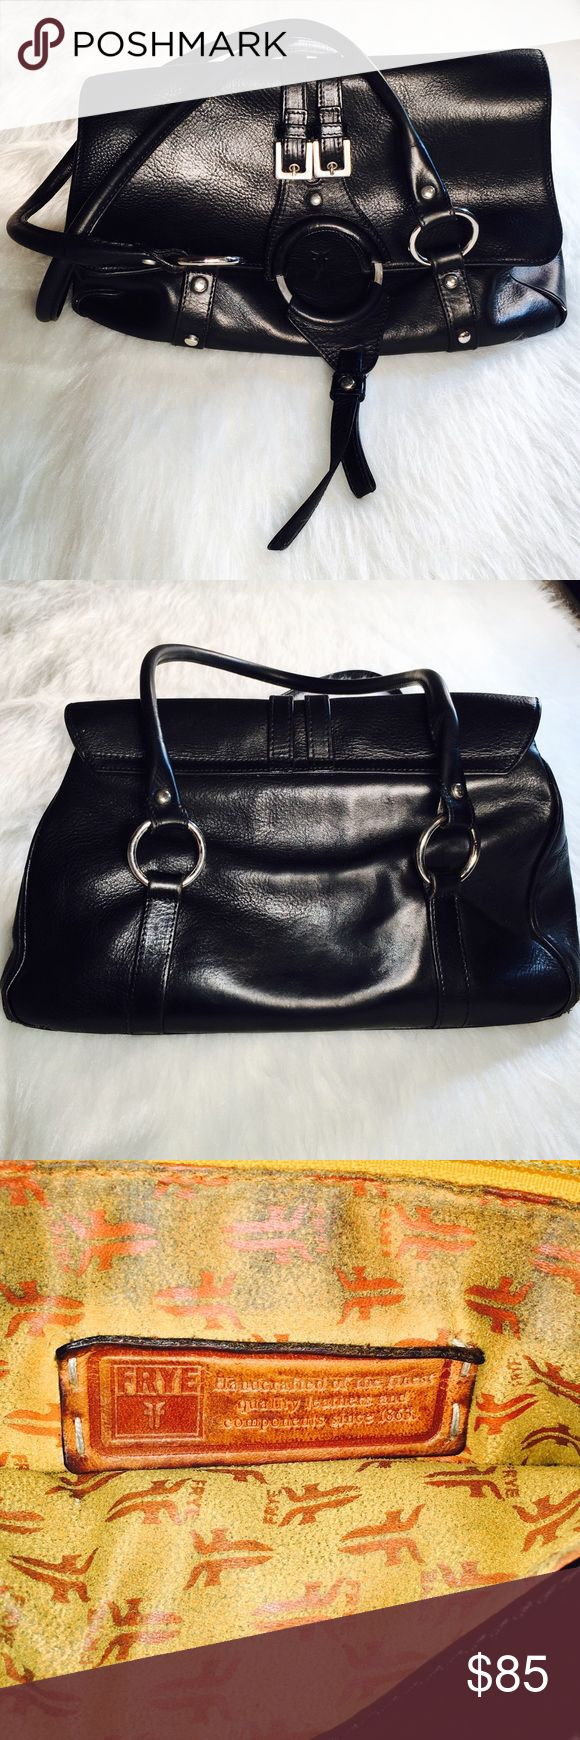 "FRYE black leather saddle bag fold over handbag FRYE black saddle bag - incredible leather handbag. NOTE: the bag has wear: the bottom corners need repair! See photo -- this is the worst of it. A cobbler / ""shoe & bag guy"" should be able to repair but bag comes ""as is."" Bag is about the size of a piece of standard printer paper. Fold over top with magnet closure. Heavy due to fine leather FRYE is known for. Inside needs cleaning -- it's a gorgeous mustard yellow suede with the FRYE logo…"